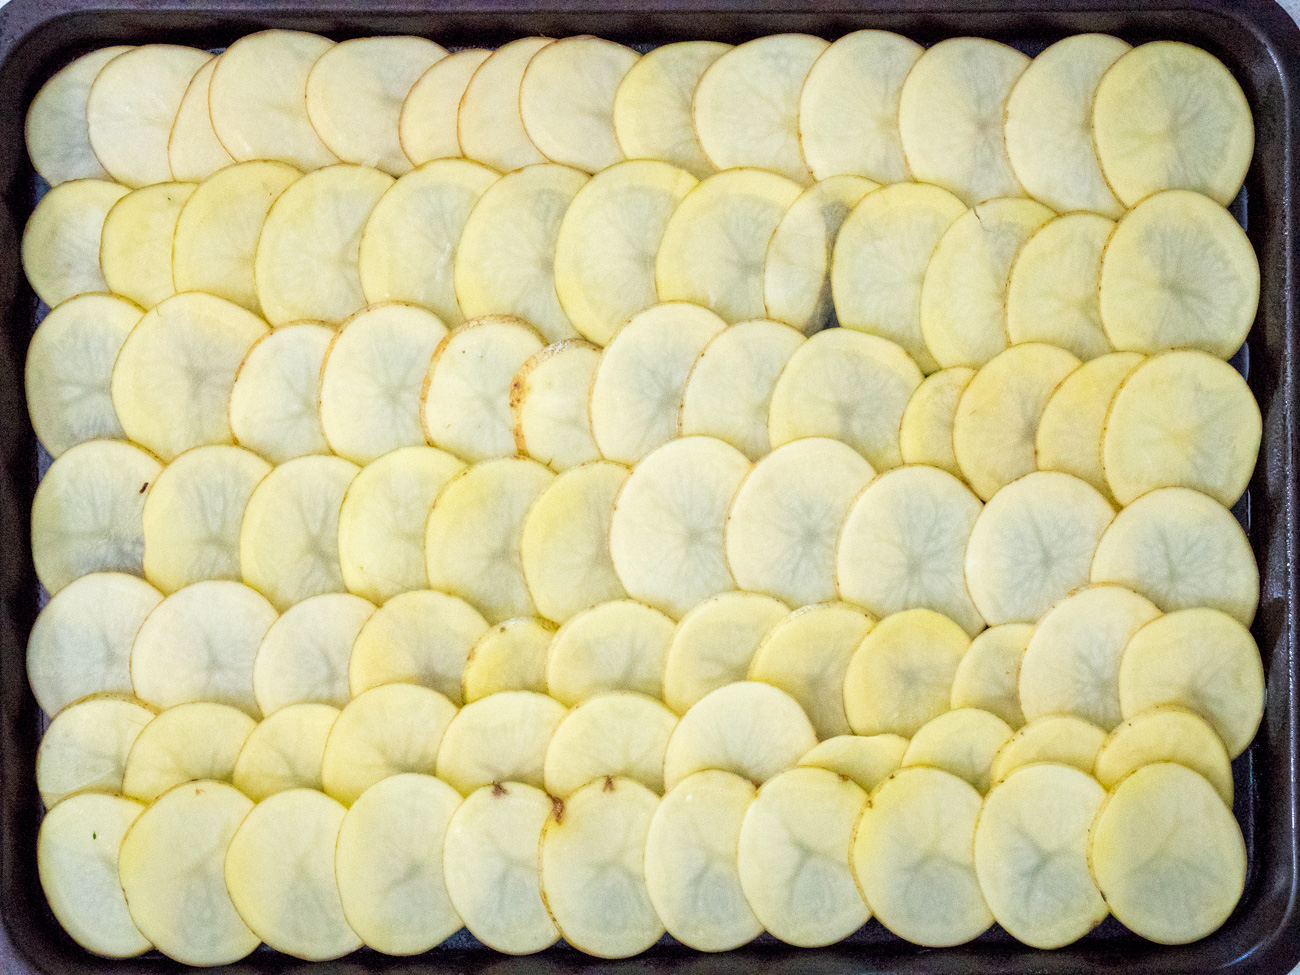 Lay out potato slices on sheet pan in rows, slightly overlapping each other.